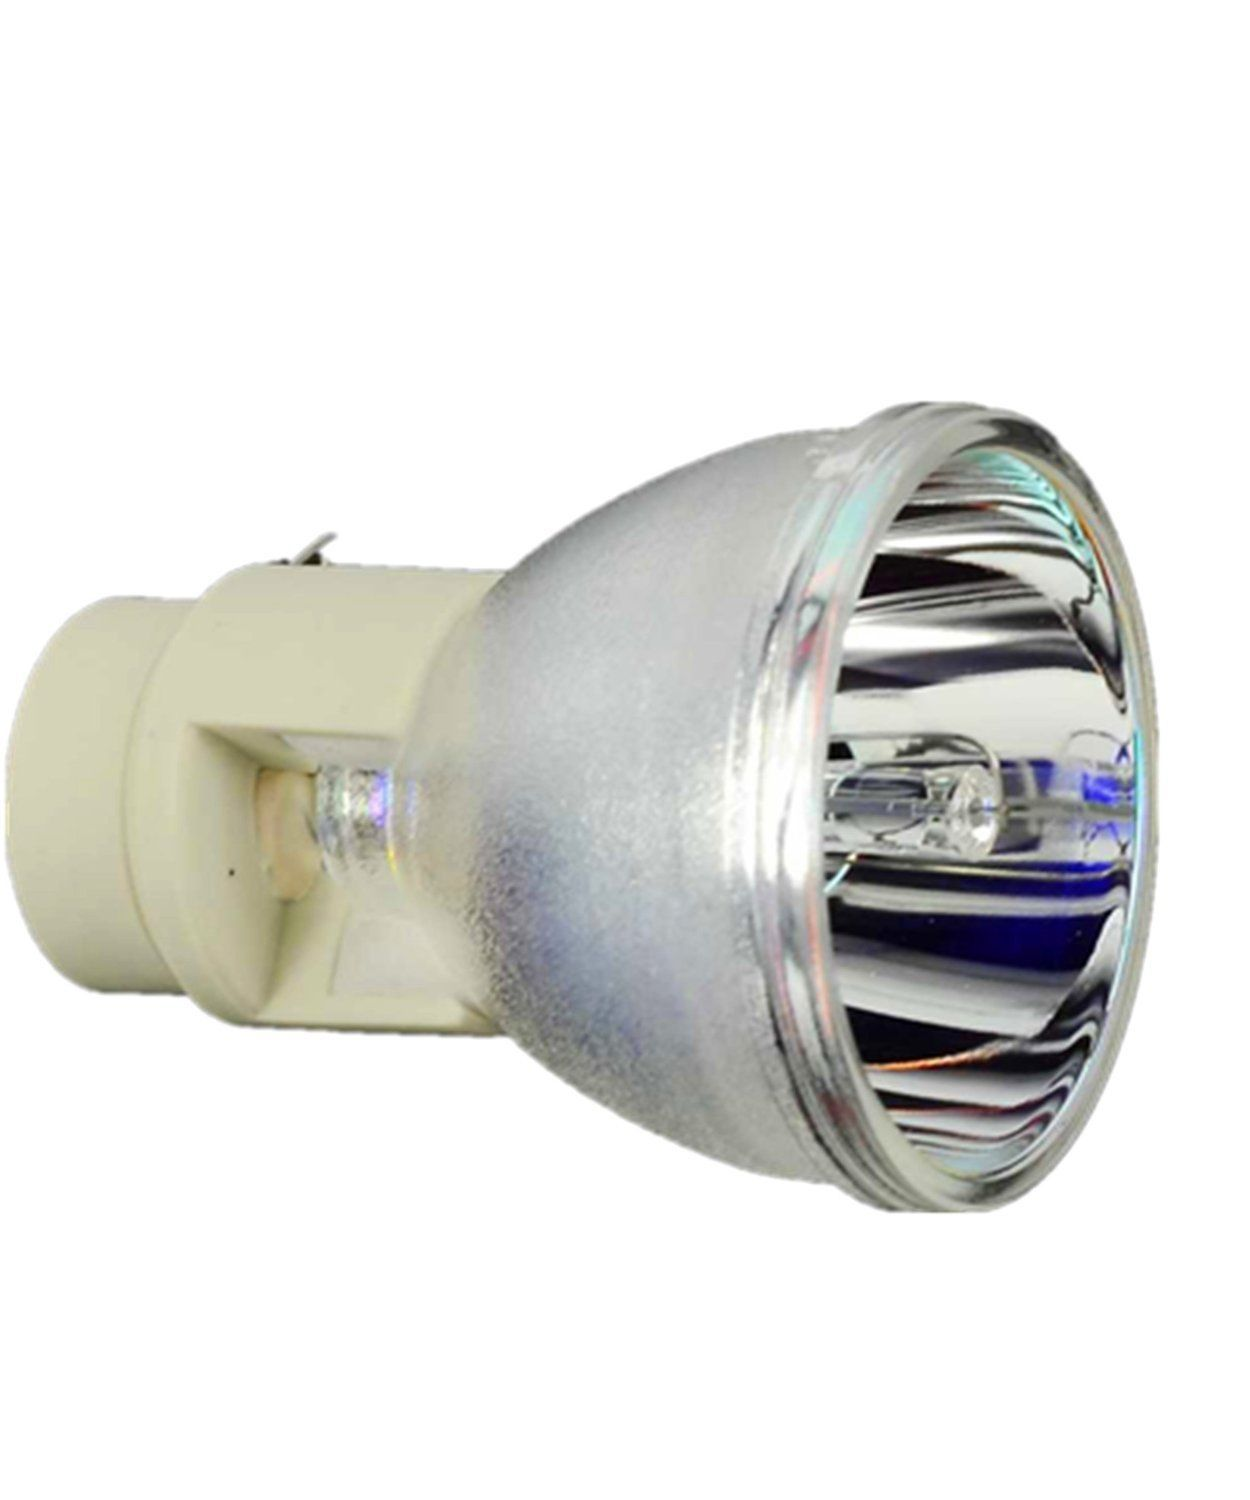 Compatible Bare Bulb RLC-101 RLC101 for VIEWSONIC PJD7836HDL Pro7827HD Projector Lamp Bulb without housing wholesale compatible bare bulb for phoenix shp69 projector lamp bulb